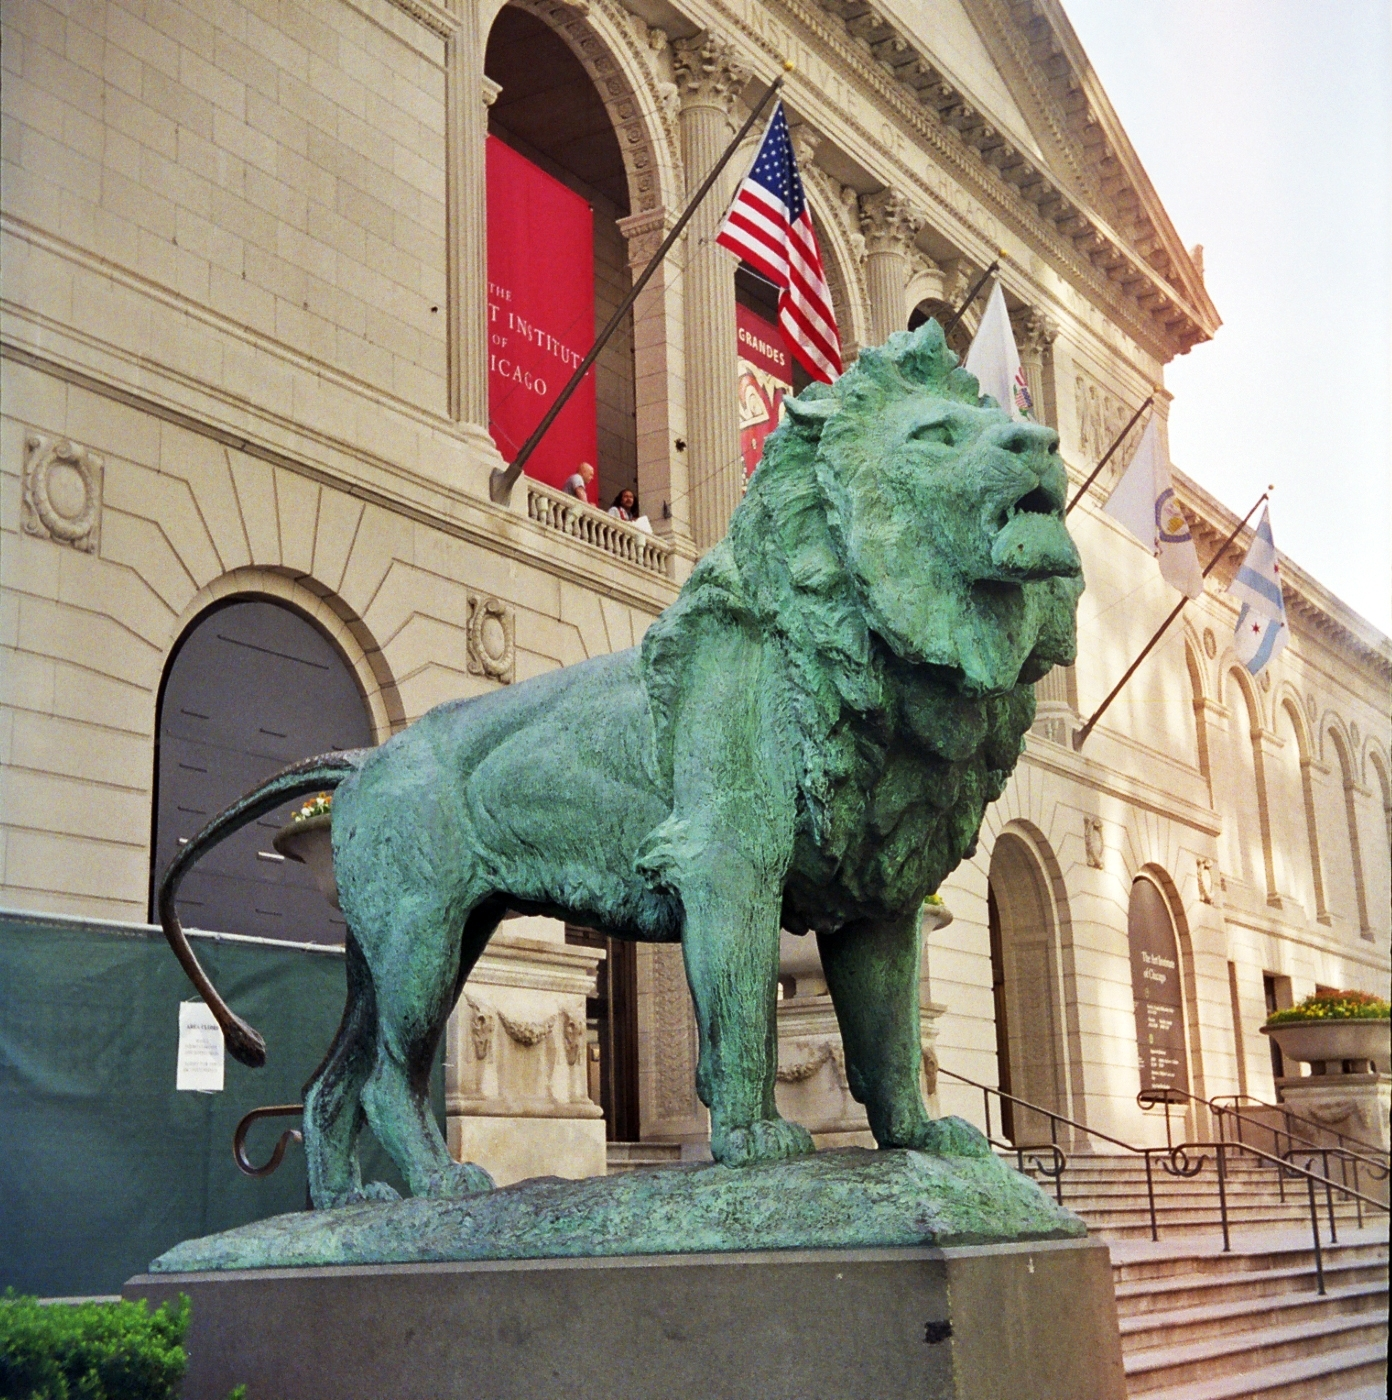 These Are The 25 Best Museums In The World - Art Institute of Chicago